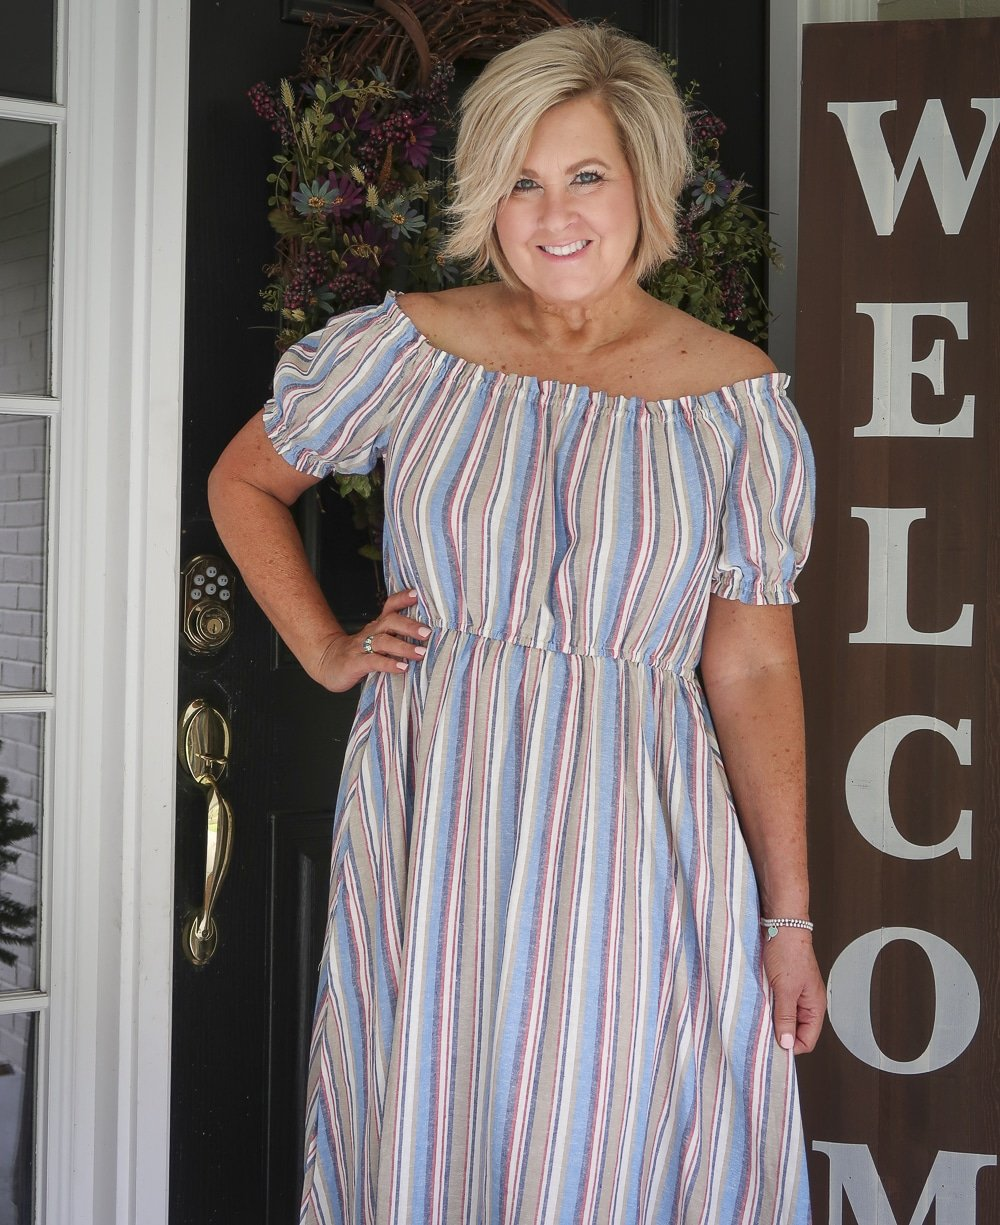 Fashion Blogger 50 Is Not Old is wearing a off the shoulder striped summer dress